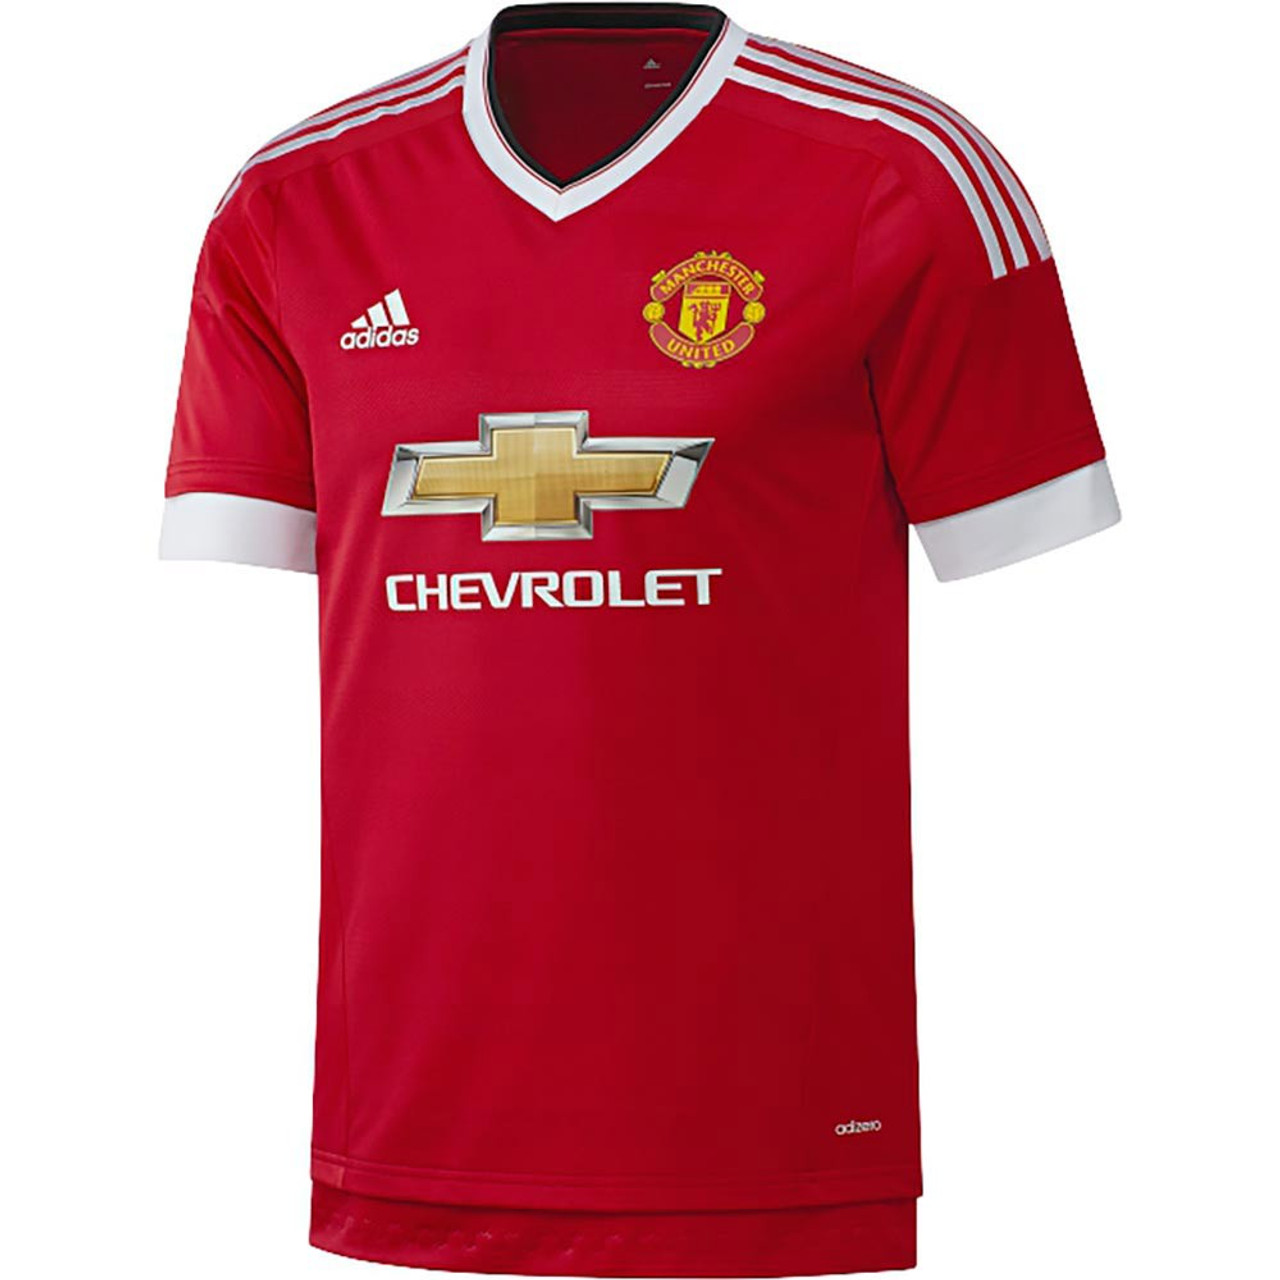 brand new f0624 16fa0 ADIDAS MANCHESTER UNITED 2016 Home Authentic Jersey